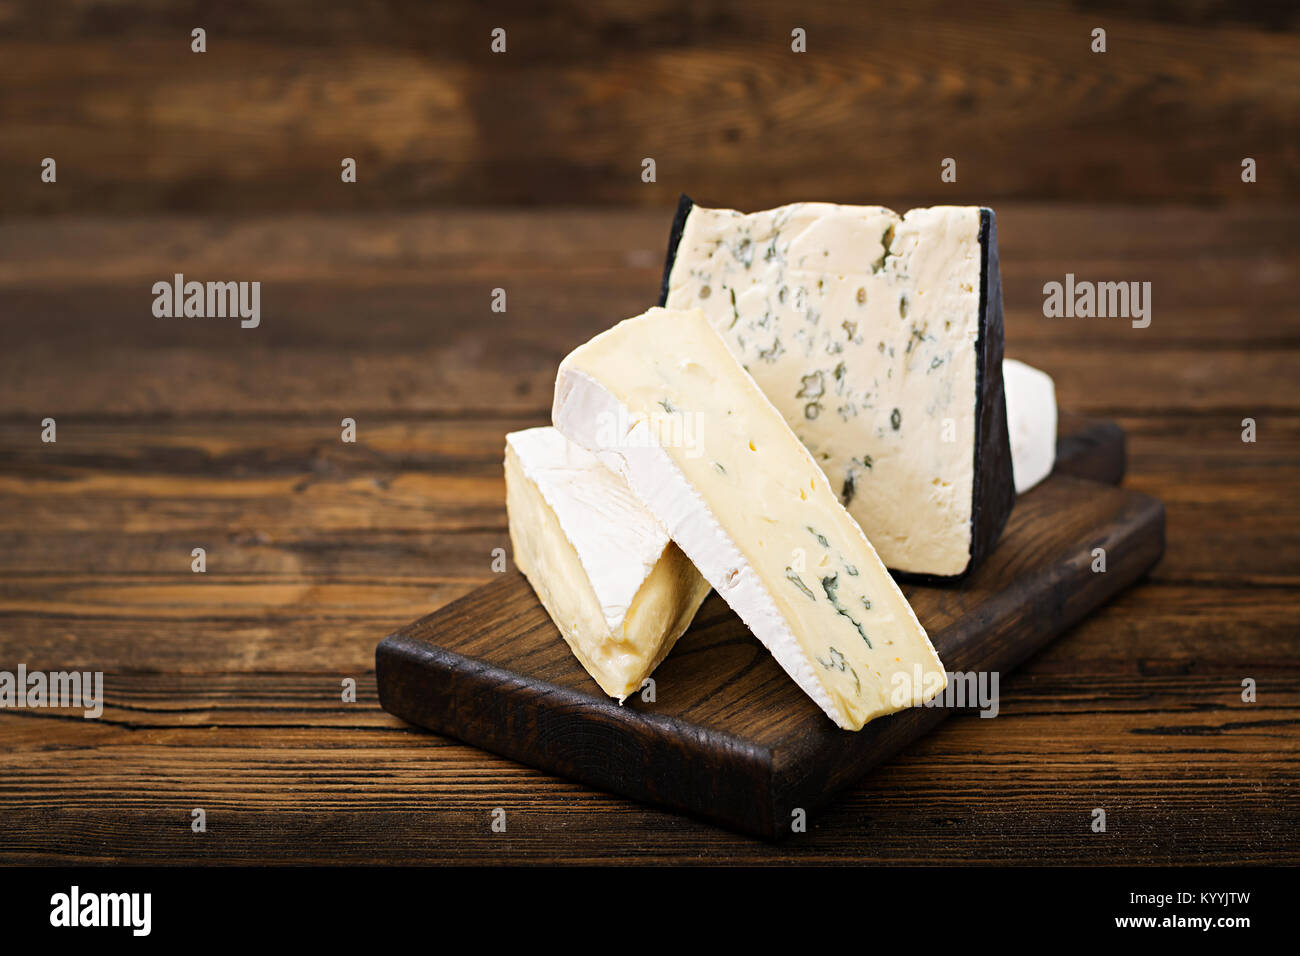 Assortment of cheeses. Camembert, dor blu, brie on a wooden background - Stock Image